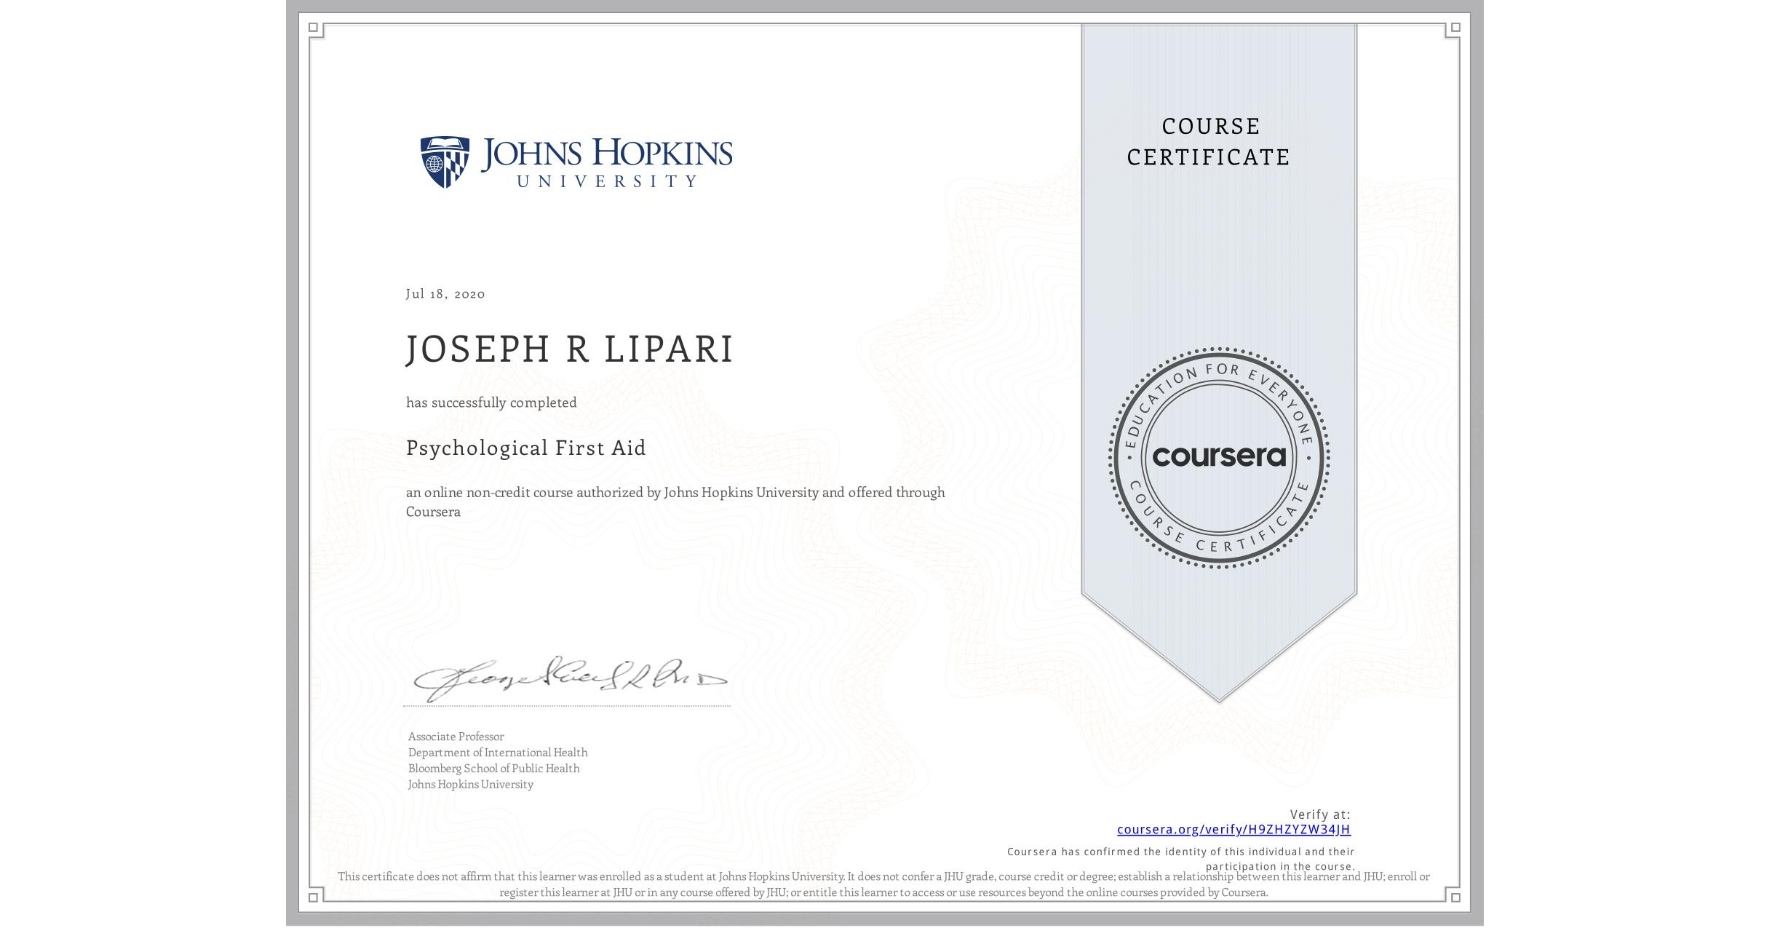 View certificate for JOSEPH R  LIPARI, Psychological First Aid, an online non-credit course authorized by Johns Hopkins University and offered through Coursera